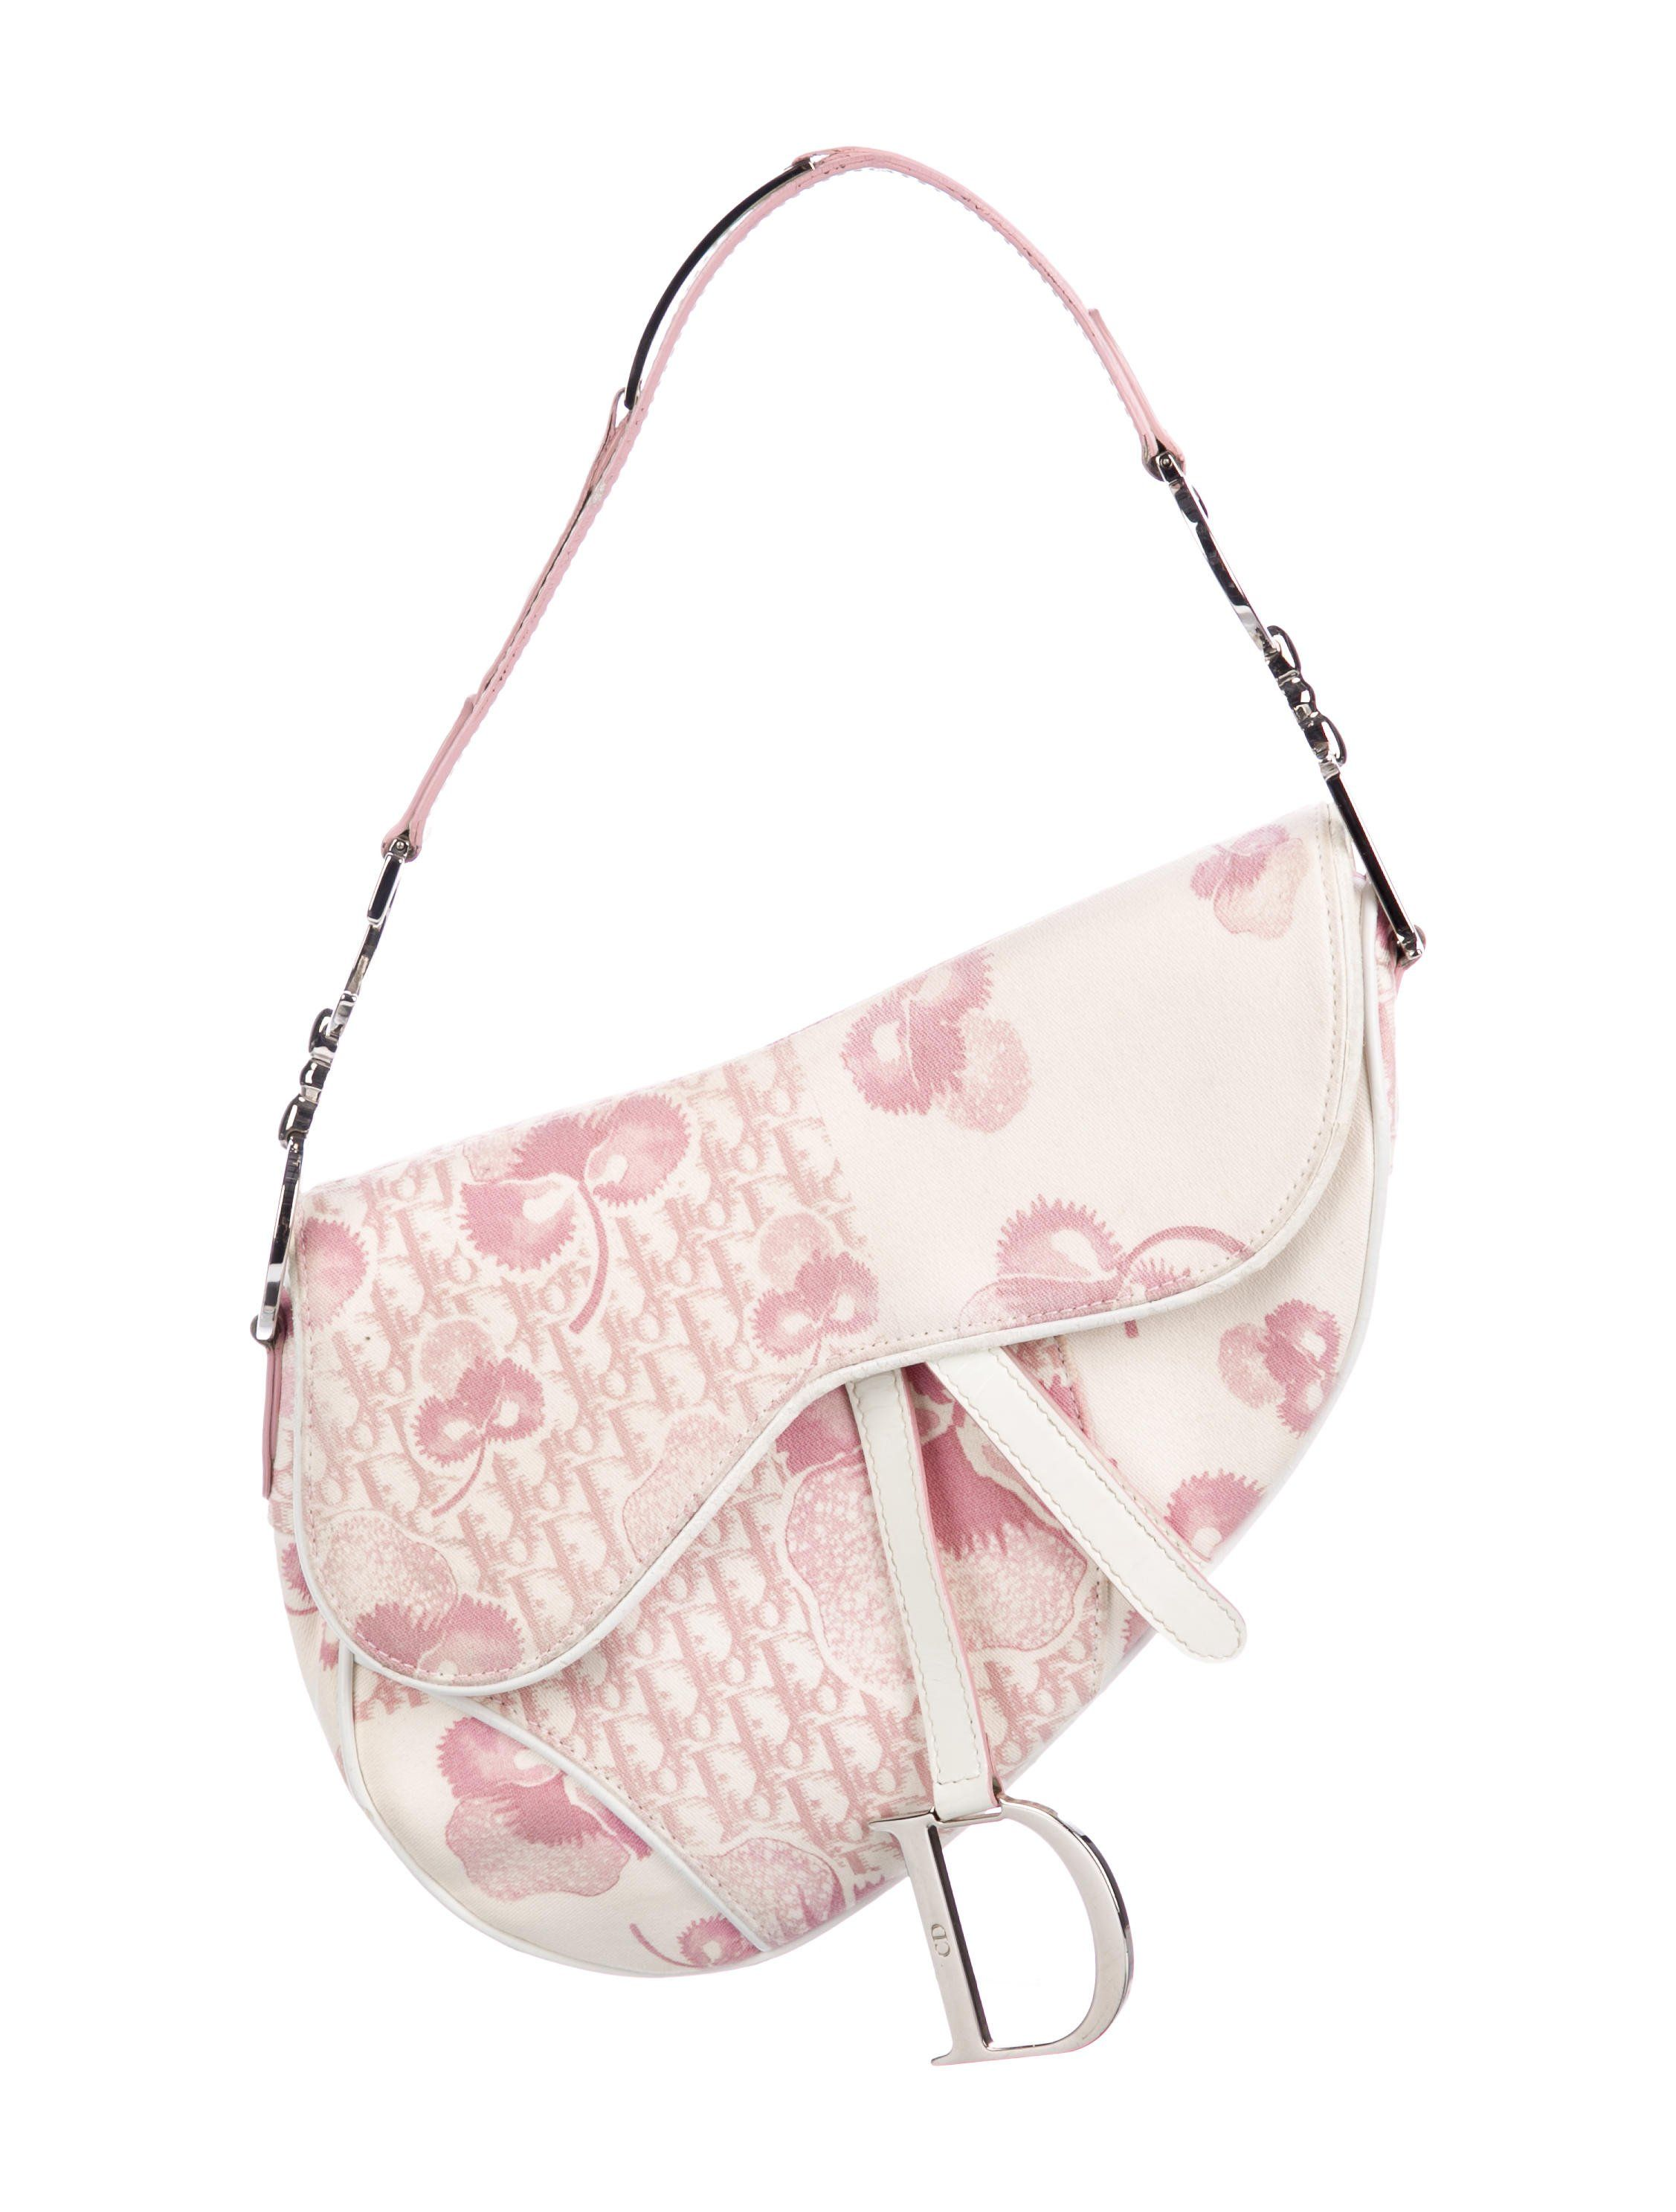 0ea3d120e7d Pink and creme floral Diorissimo coated canvas Christian Dior Girly saddle  bag with silver-tone hardware, single flat shoulder strap featuring logo ...